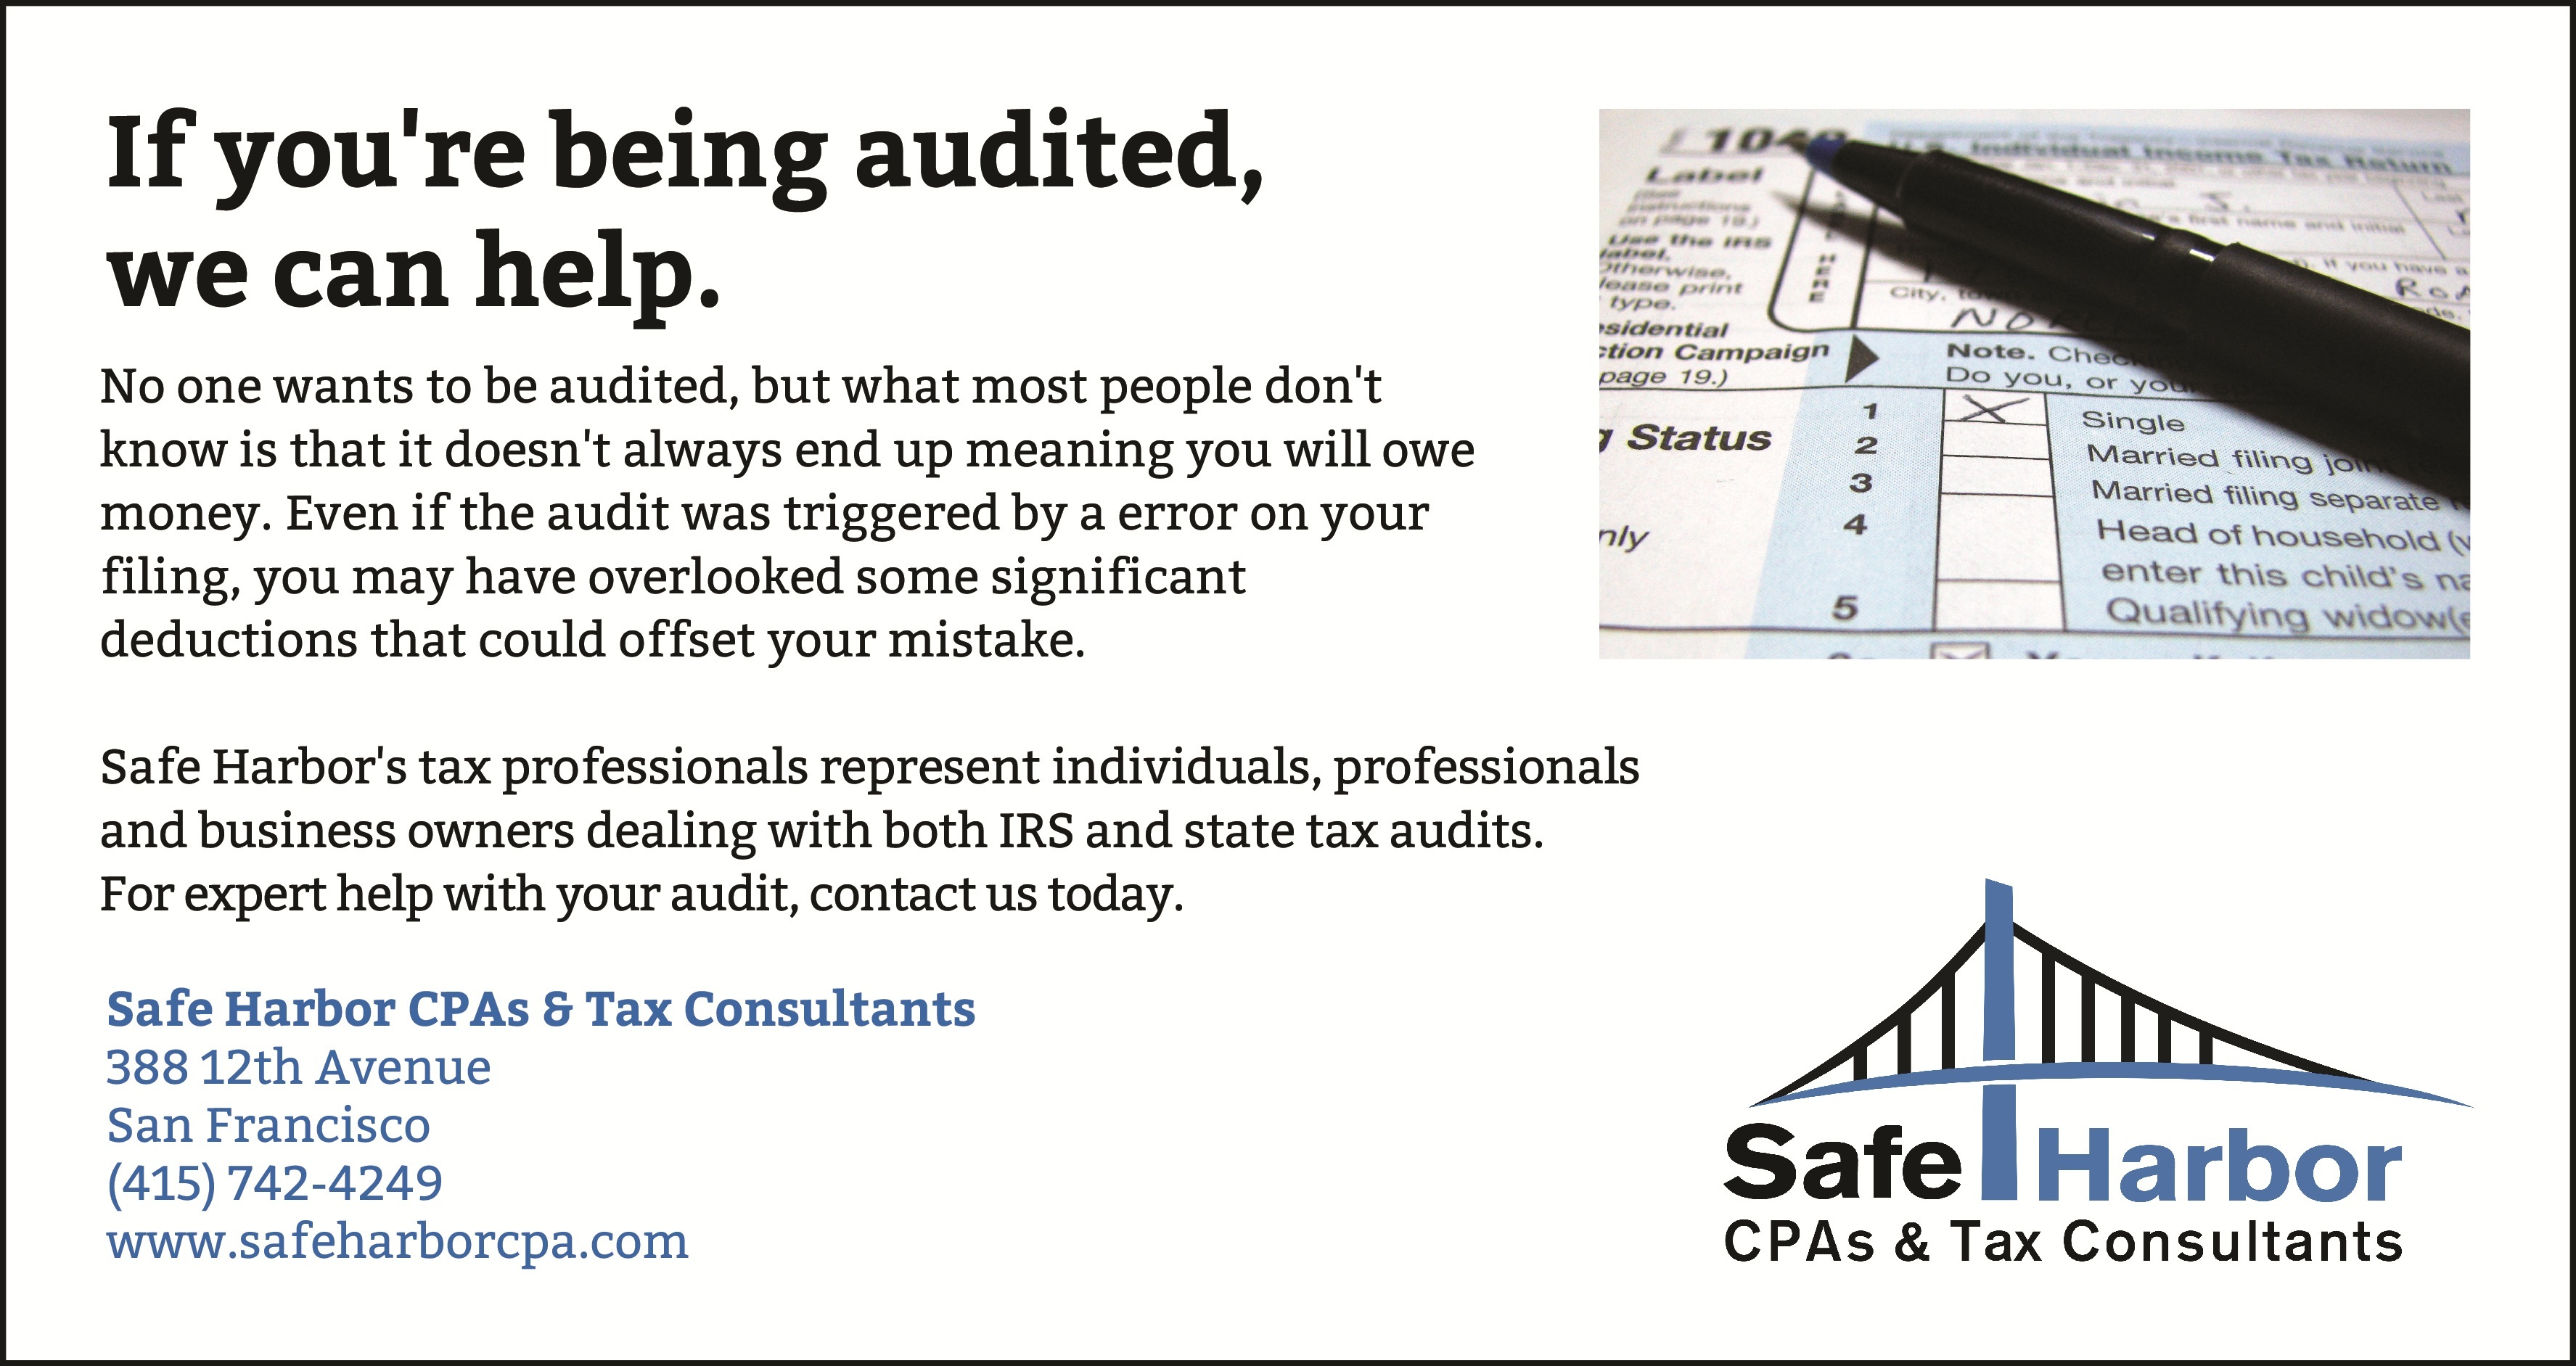 Tax Audit in San Francisco - Help from the CPAs at Safe Harbor